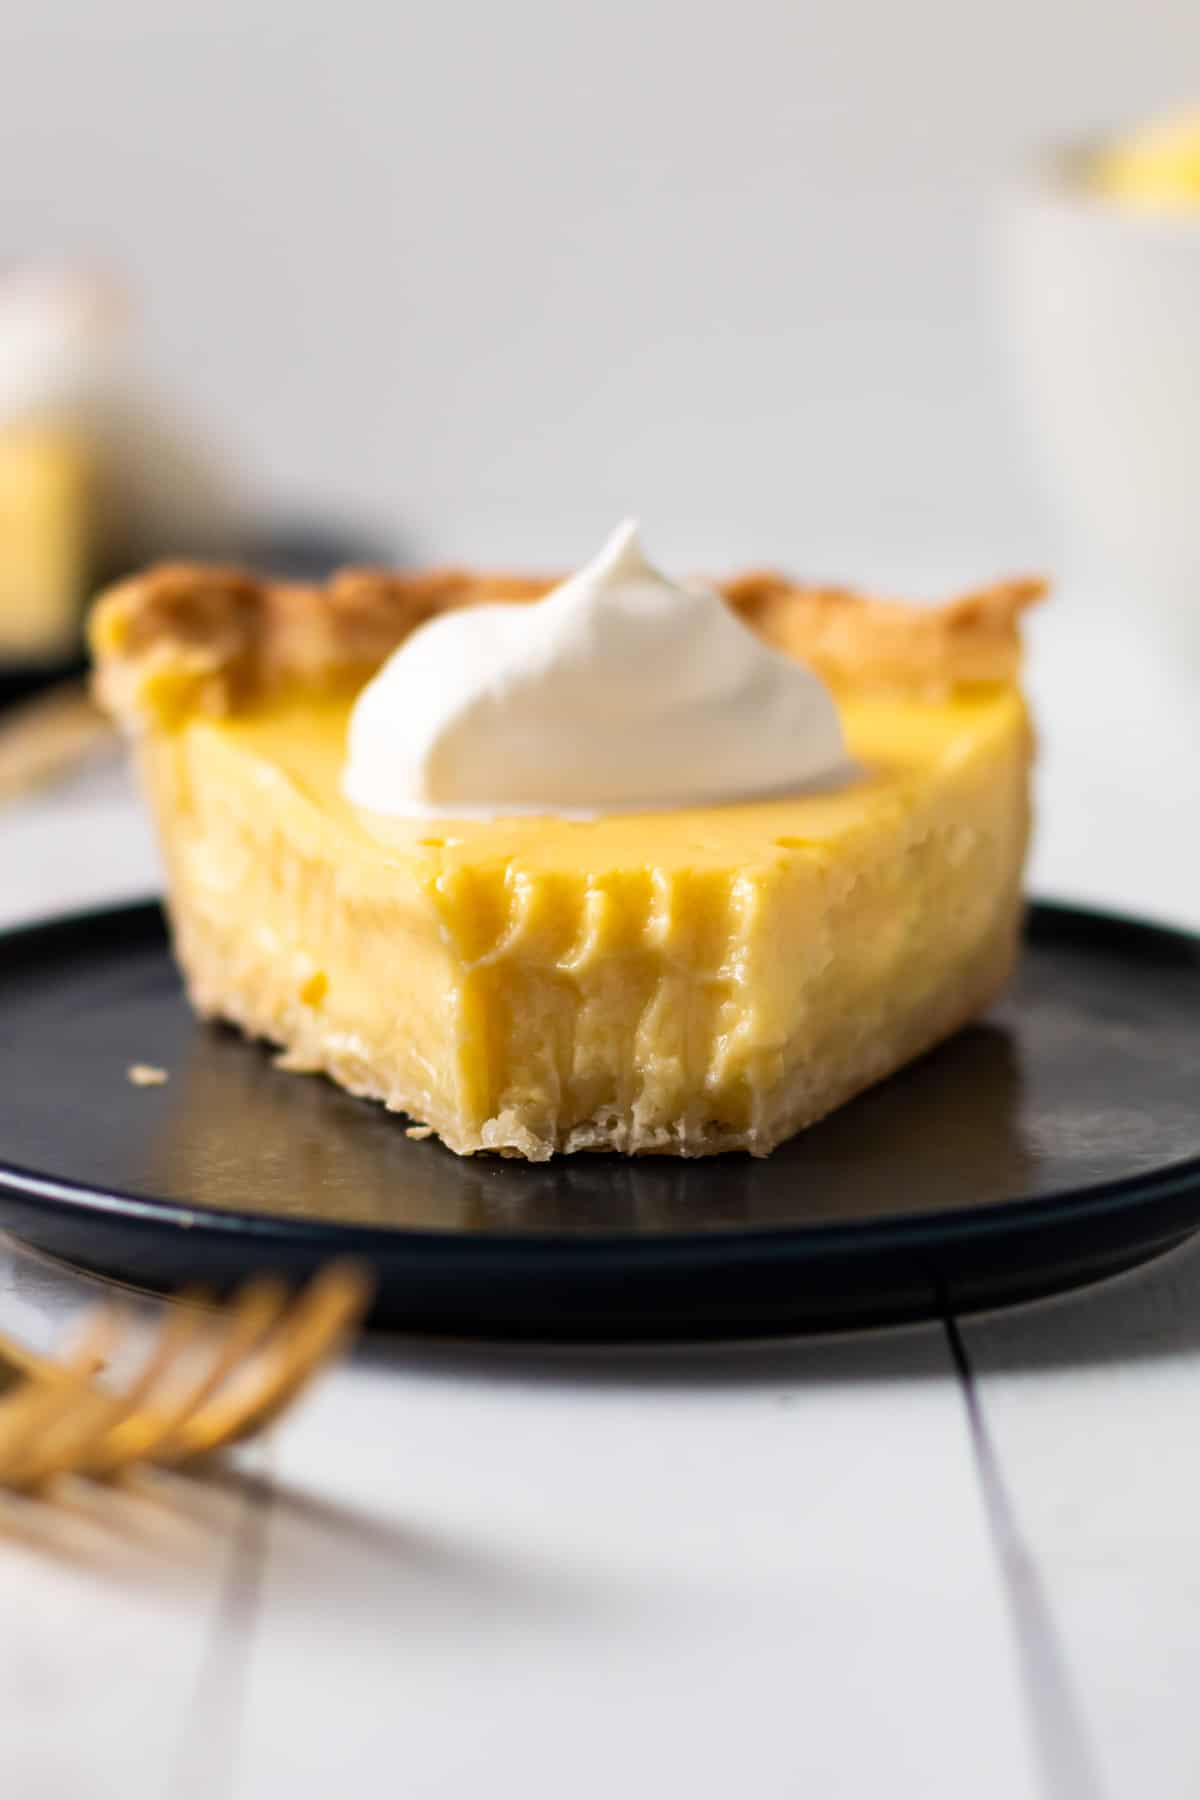 A slice of lemon custard pie.